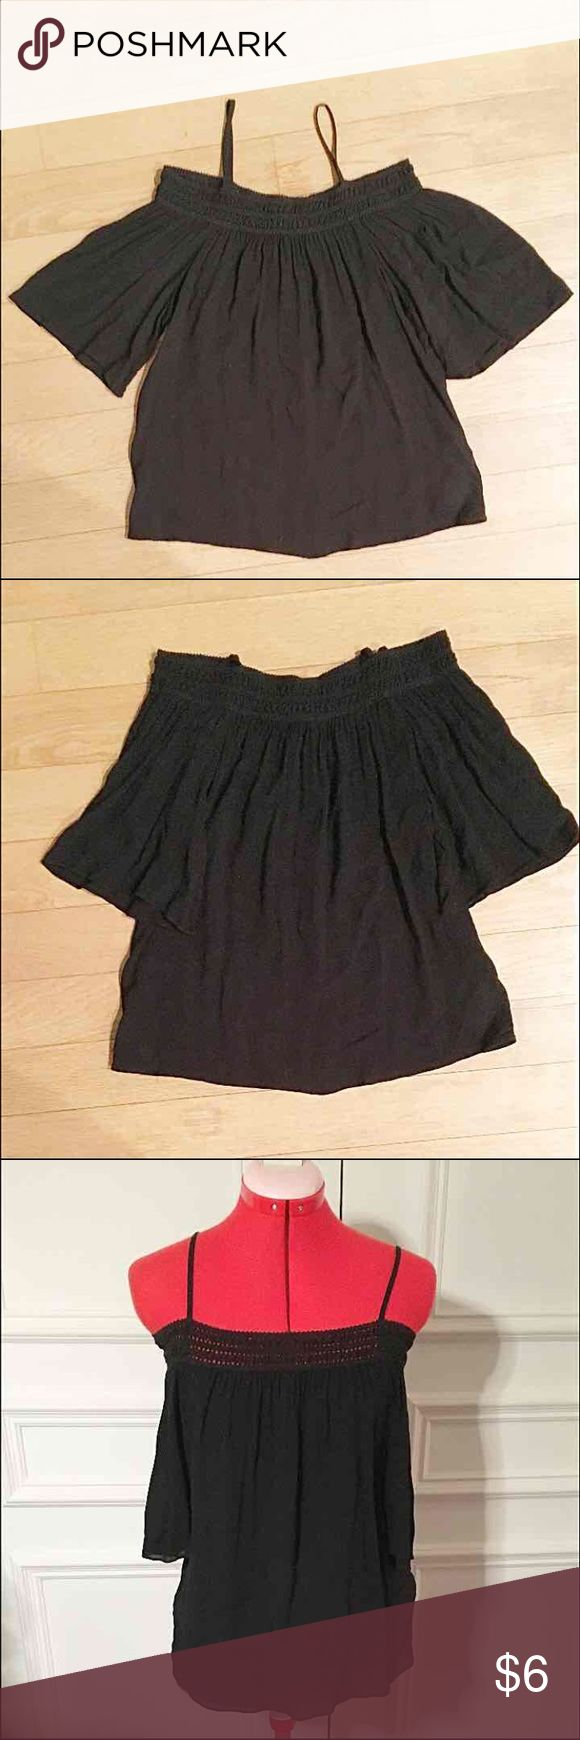 Black off shoulder top! Super cute and versatile black off shoulder top from Forever 21 Lightweight hand flowy with elastic crocheted neckline Has shoulder straps which can be worn visible, or tucked in Condition is like new! Size S  Bundle with other listings for savings! Forever 21 Tops Blouses